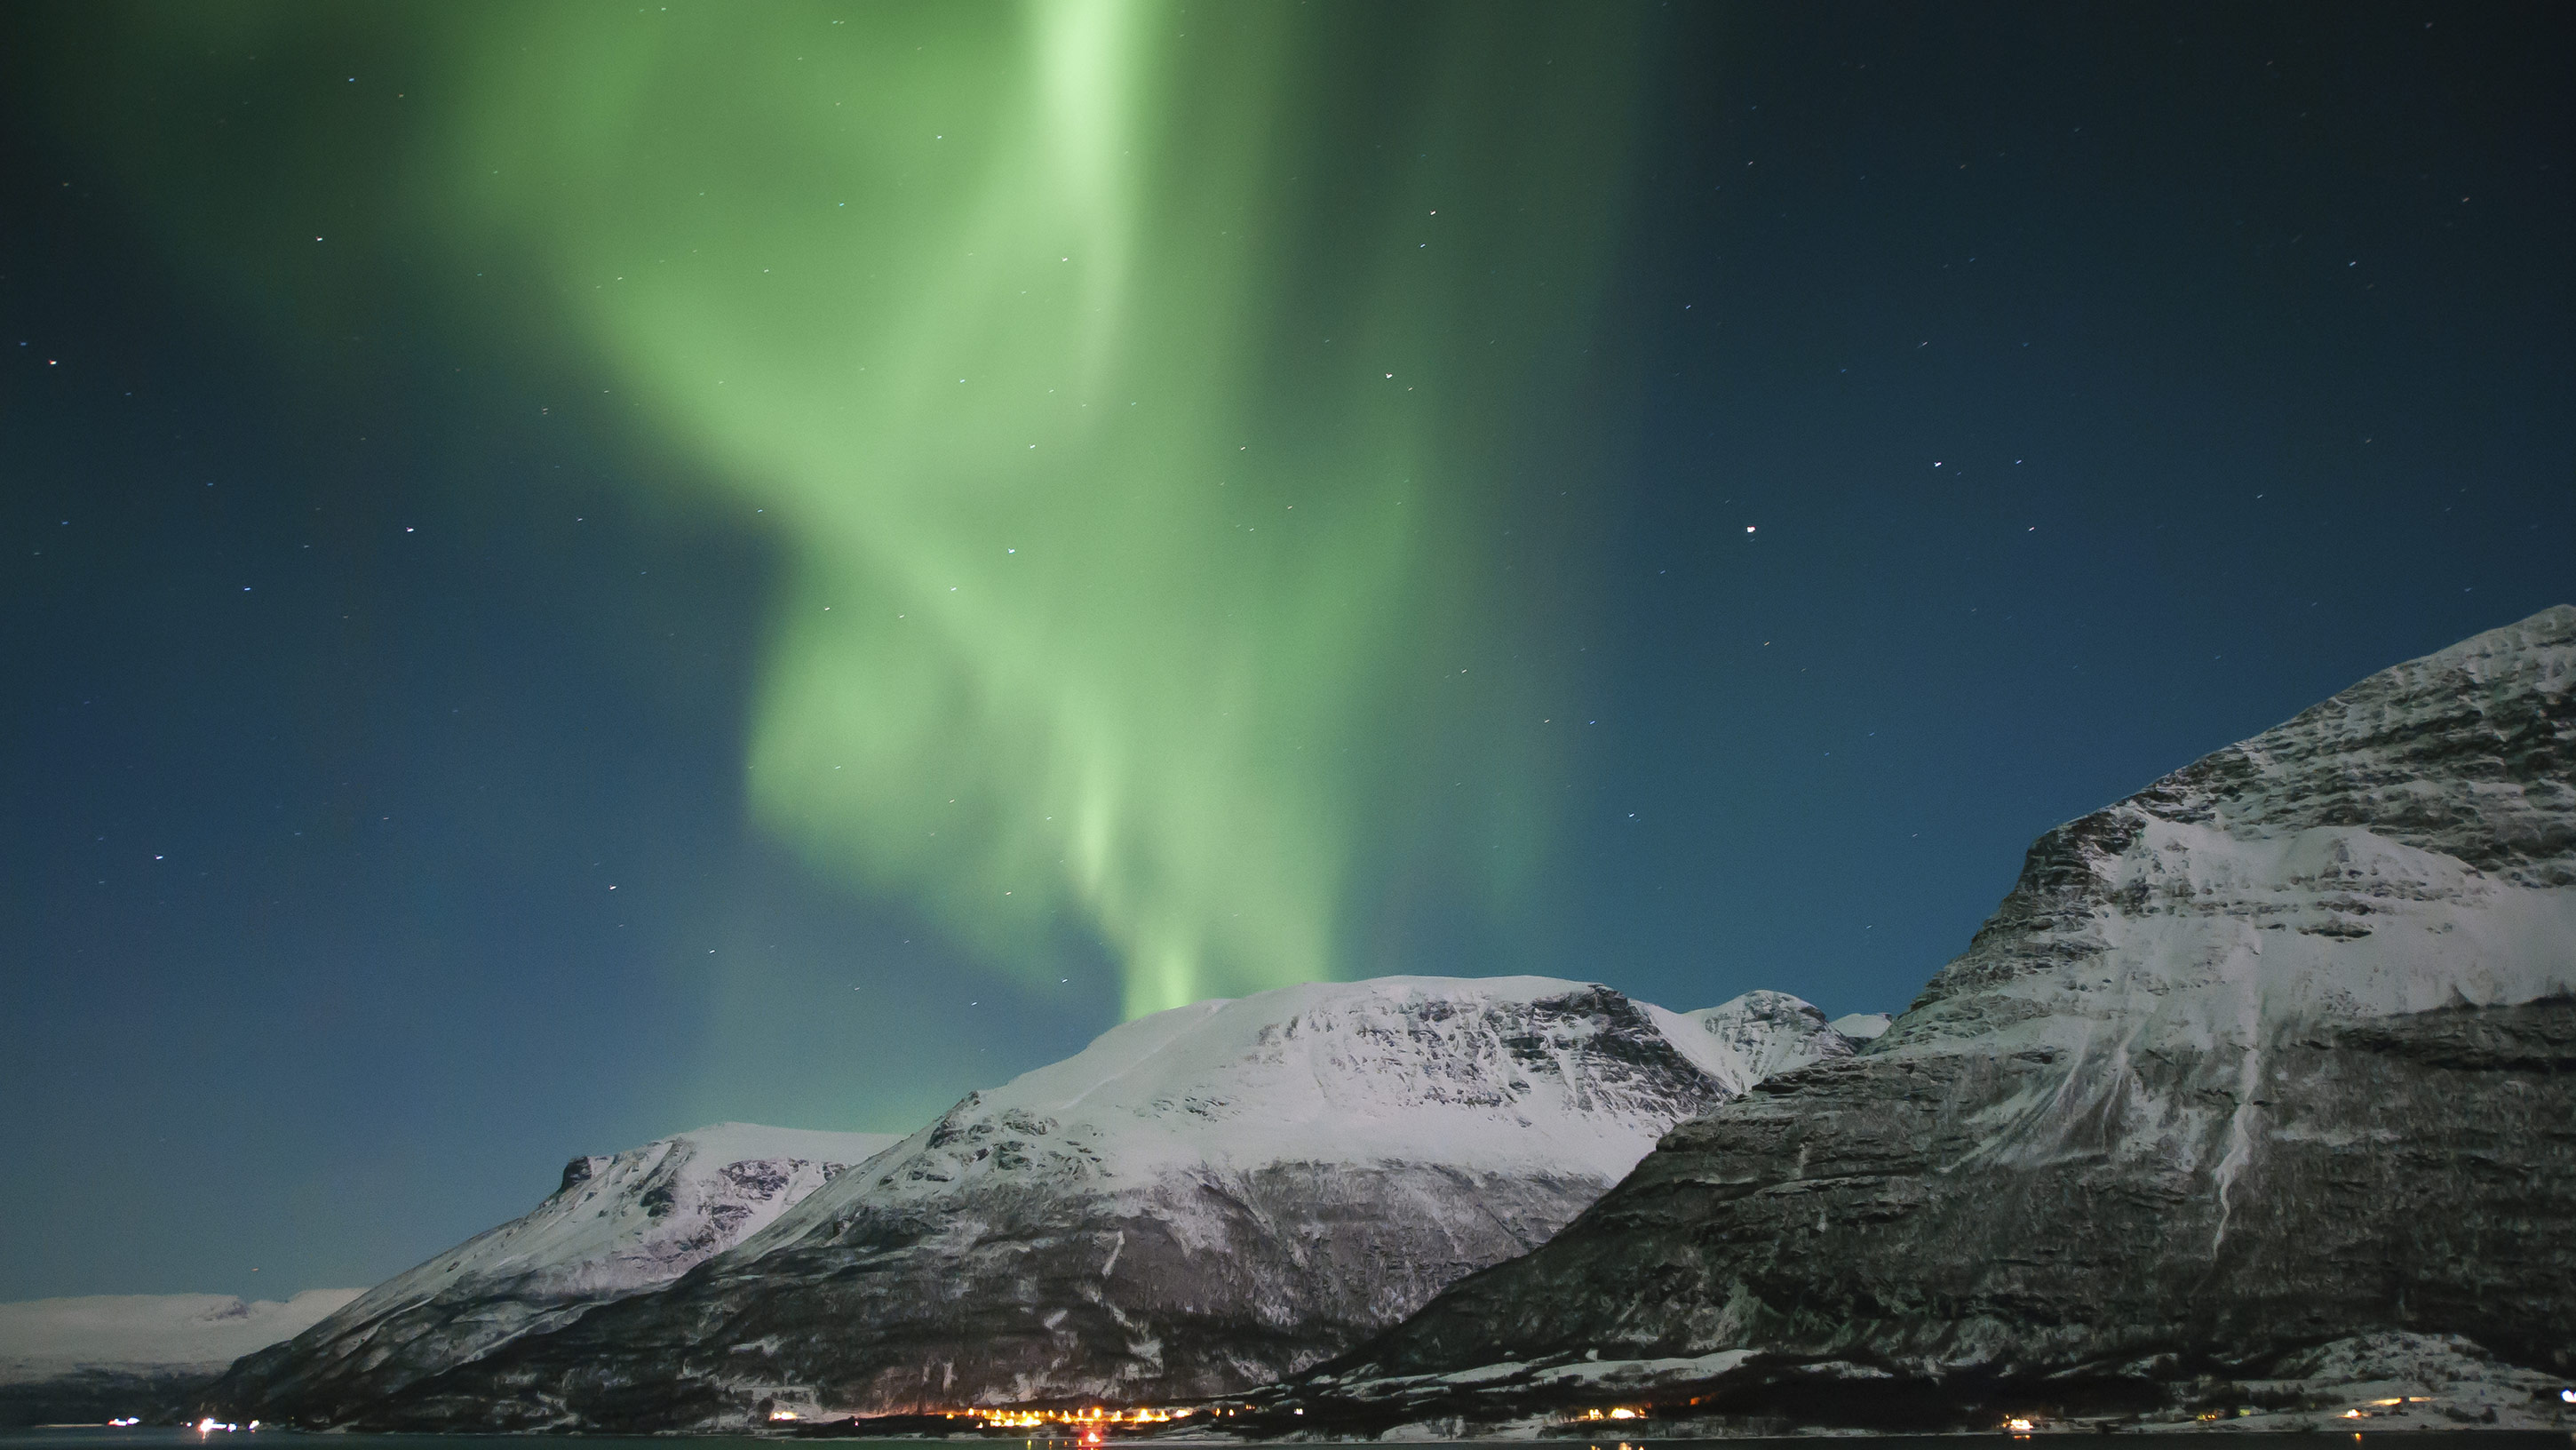 northern lights in norway - fotos de auroras boreales en Noruega